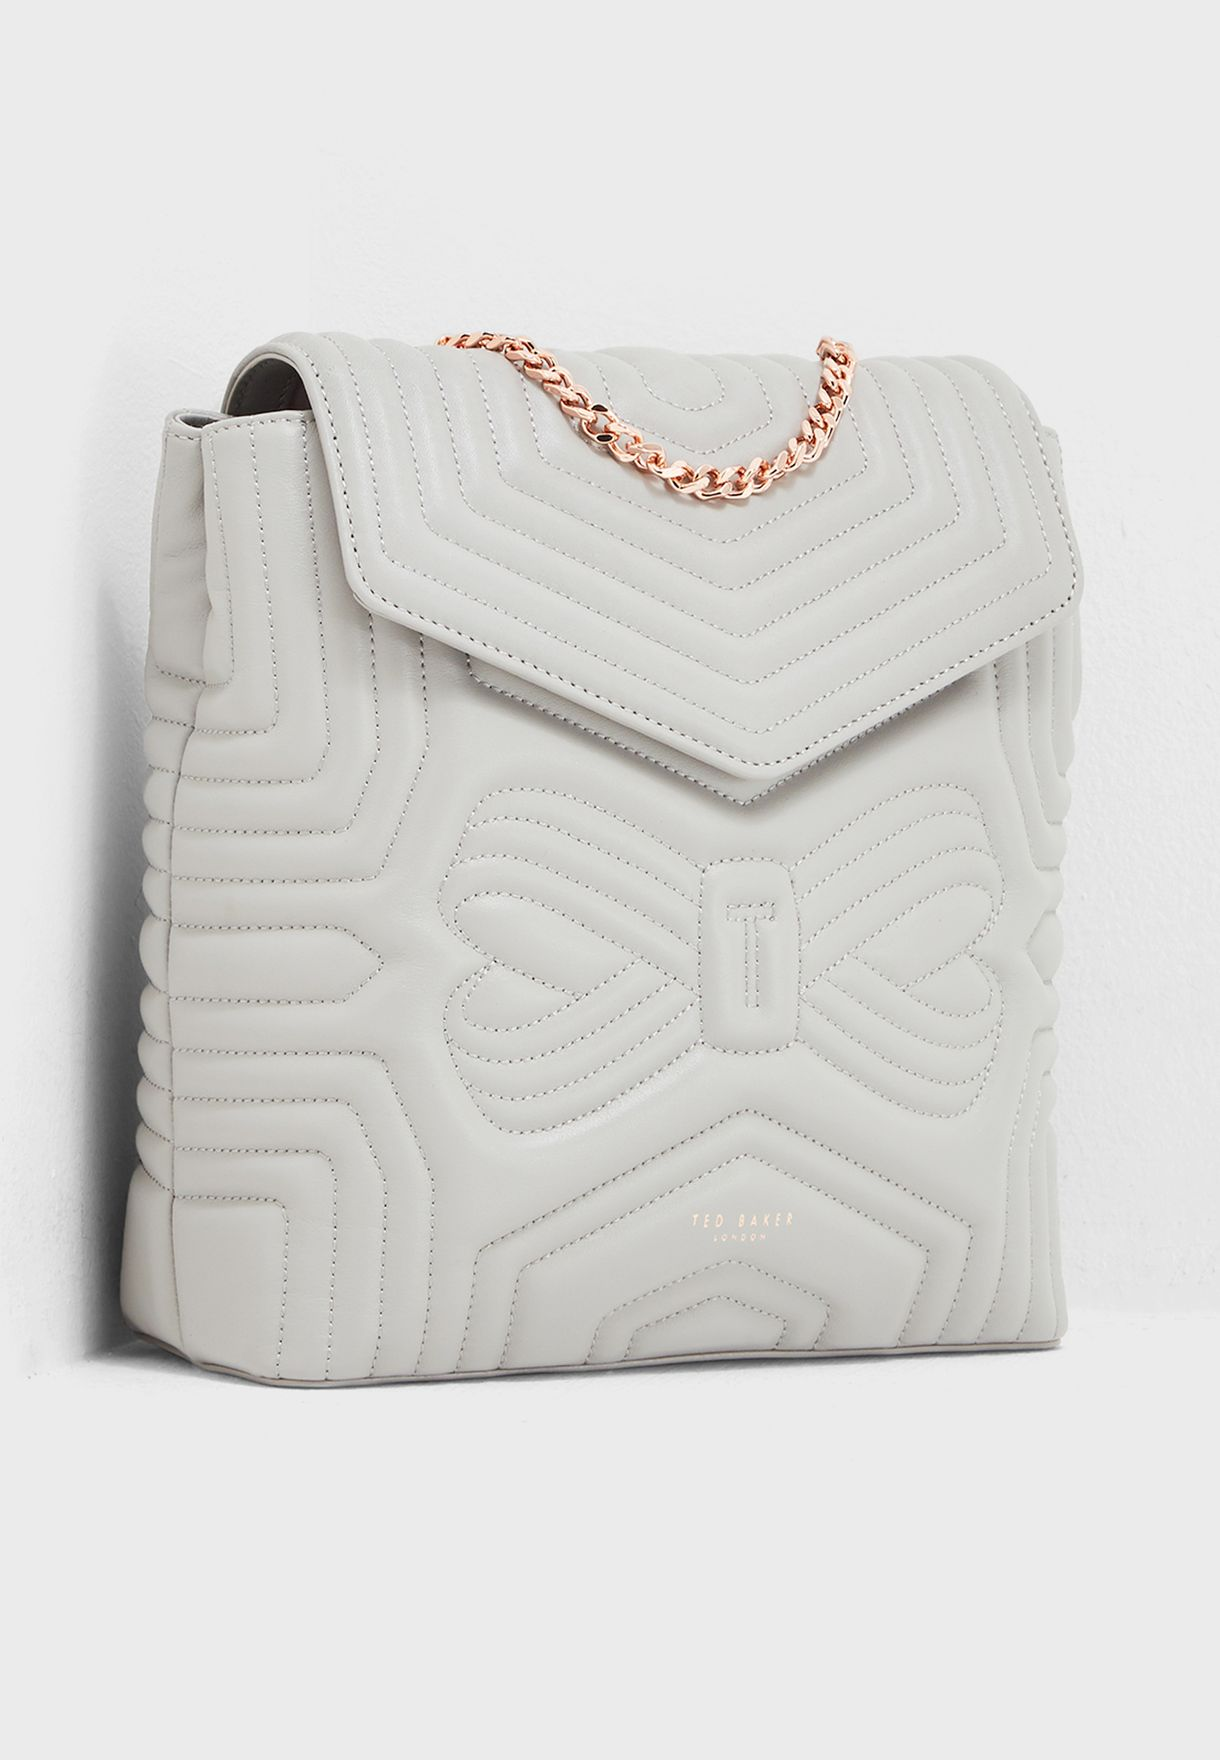 9044aeb21cc7 Shop Ted baker grey Quilted Bow Backpack 147059 for Women in UAE -  TE456AC40XBN